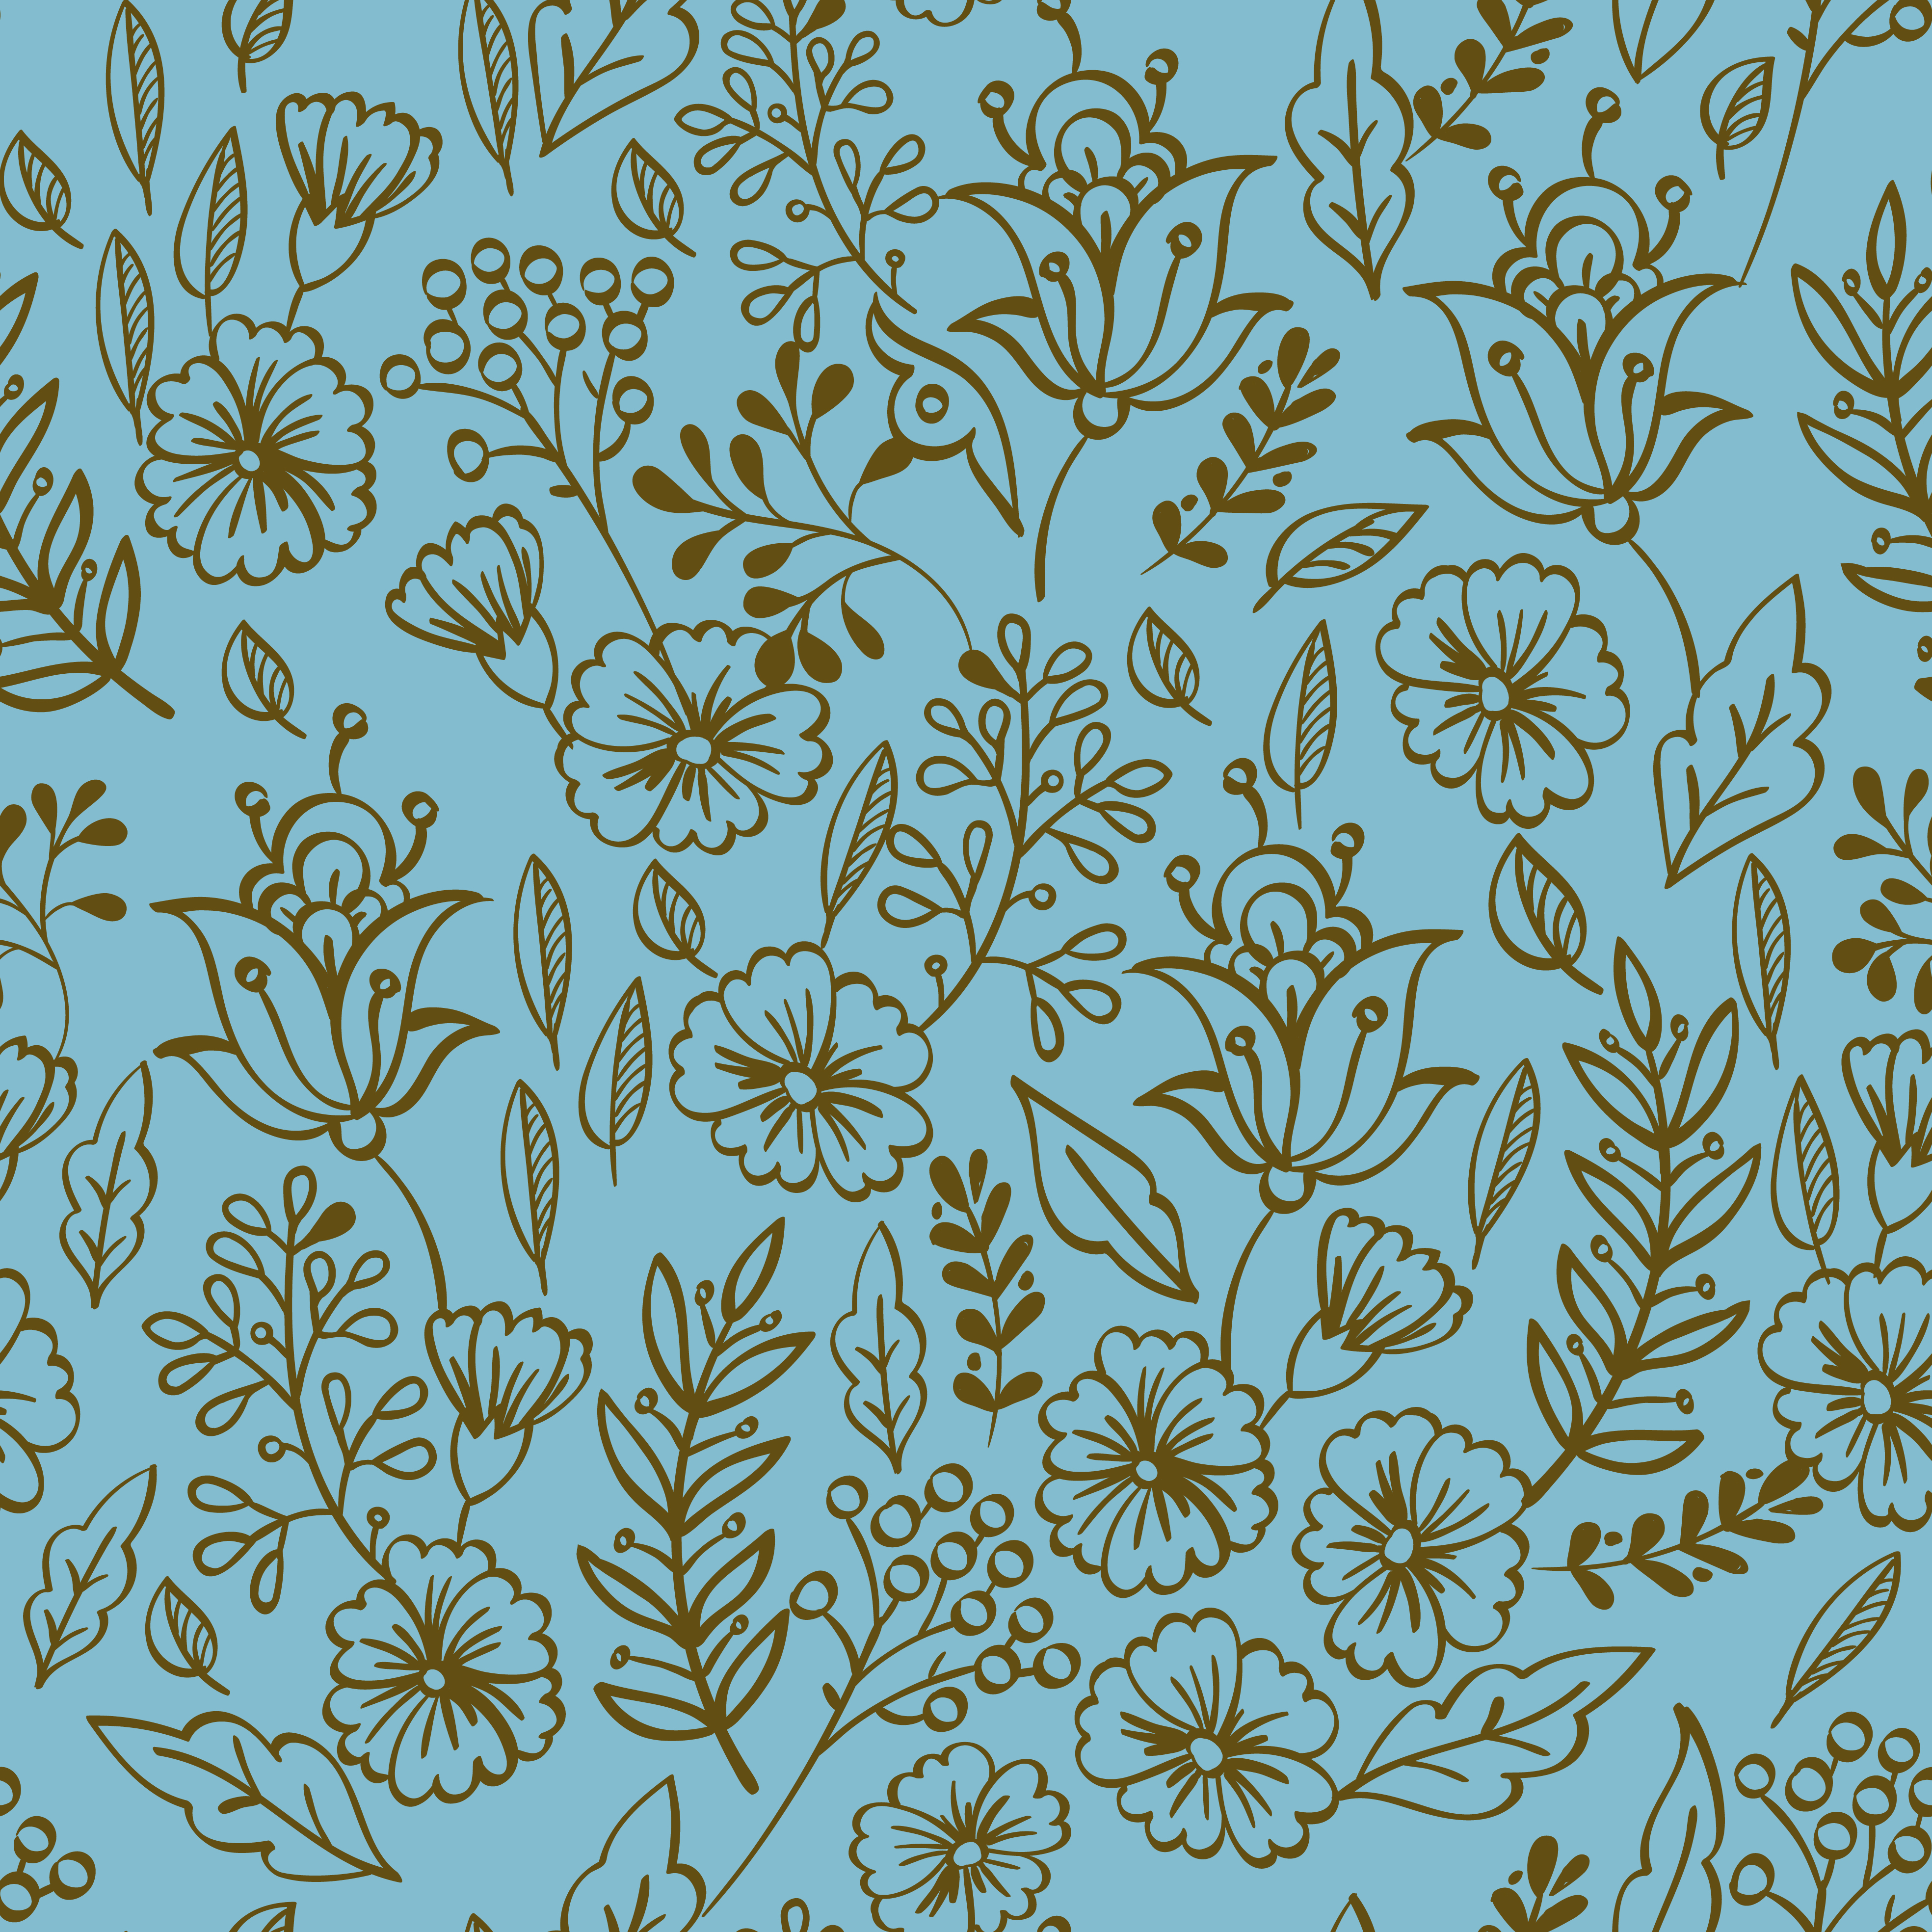 Vintage Floral Seamless Pattern Download Free Vectors Clipart